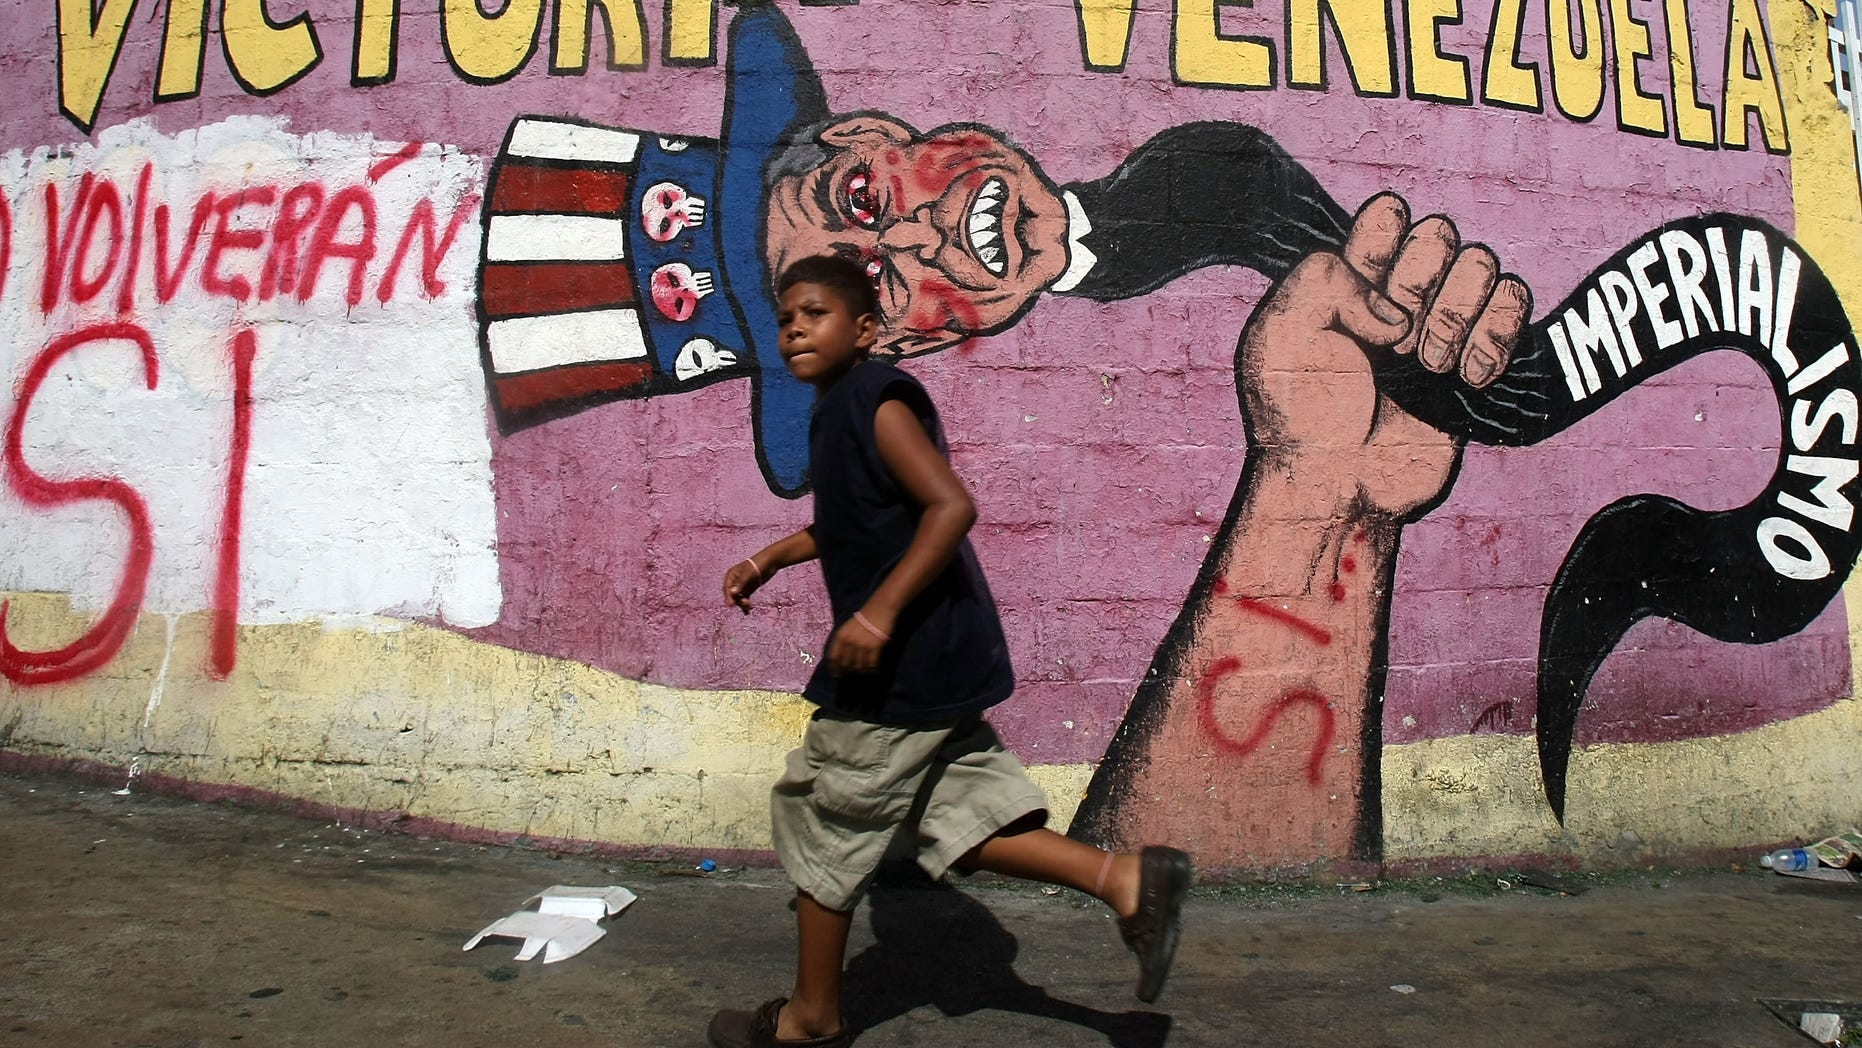 """CARACAS, VENEZUELA - DECEMBER 01:  A boy runs past anti-American propaganda and graffiti reading """"Si"""" signifying support for a referendum on changes to the Constitution introduced by Venezuelan President Hugo Chavez December 1, 2007 in Caracas, Venezuela.  Sunday's referendum proposes an elimination of term limits for Chavez and a transformation of Venezuela into a """"socialist economy.""""  (Photo by Mario Tama/Getty Images)"""